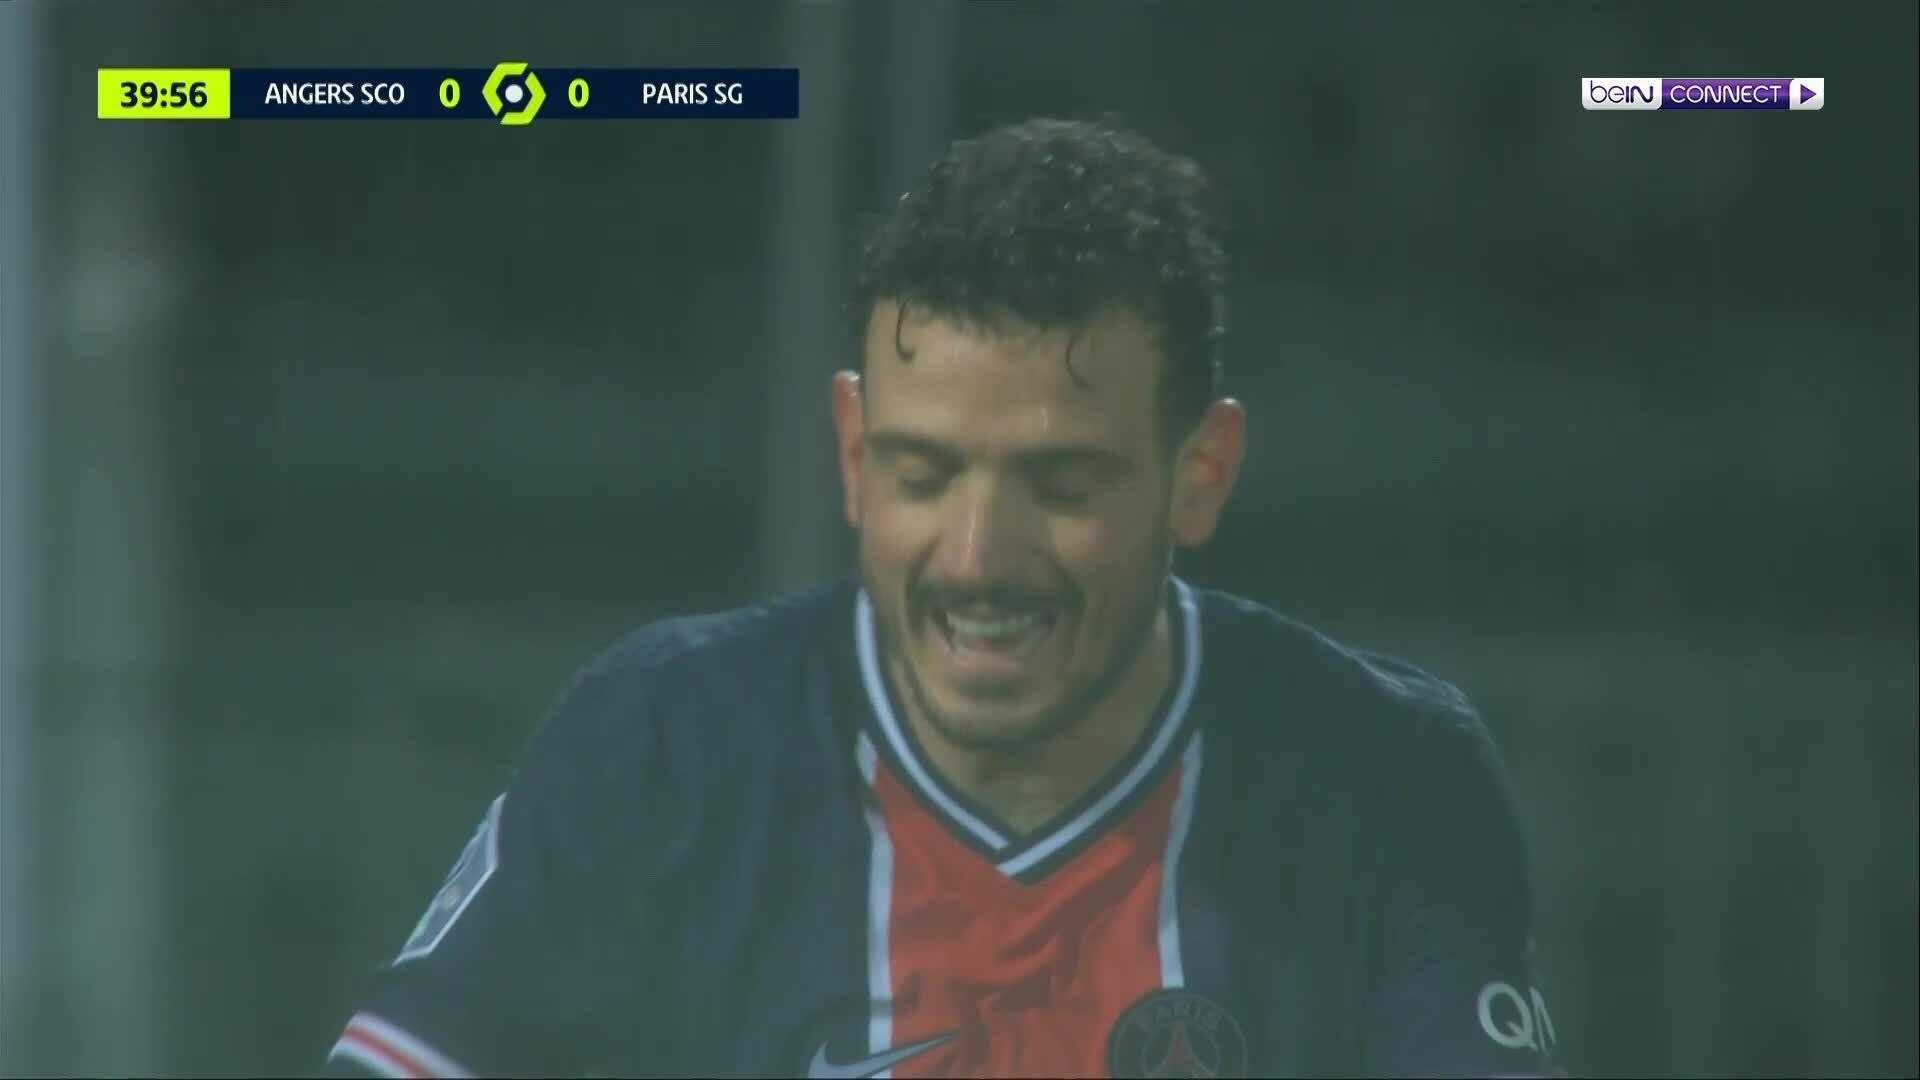 Angers 0-1 PSG